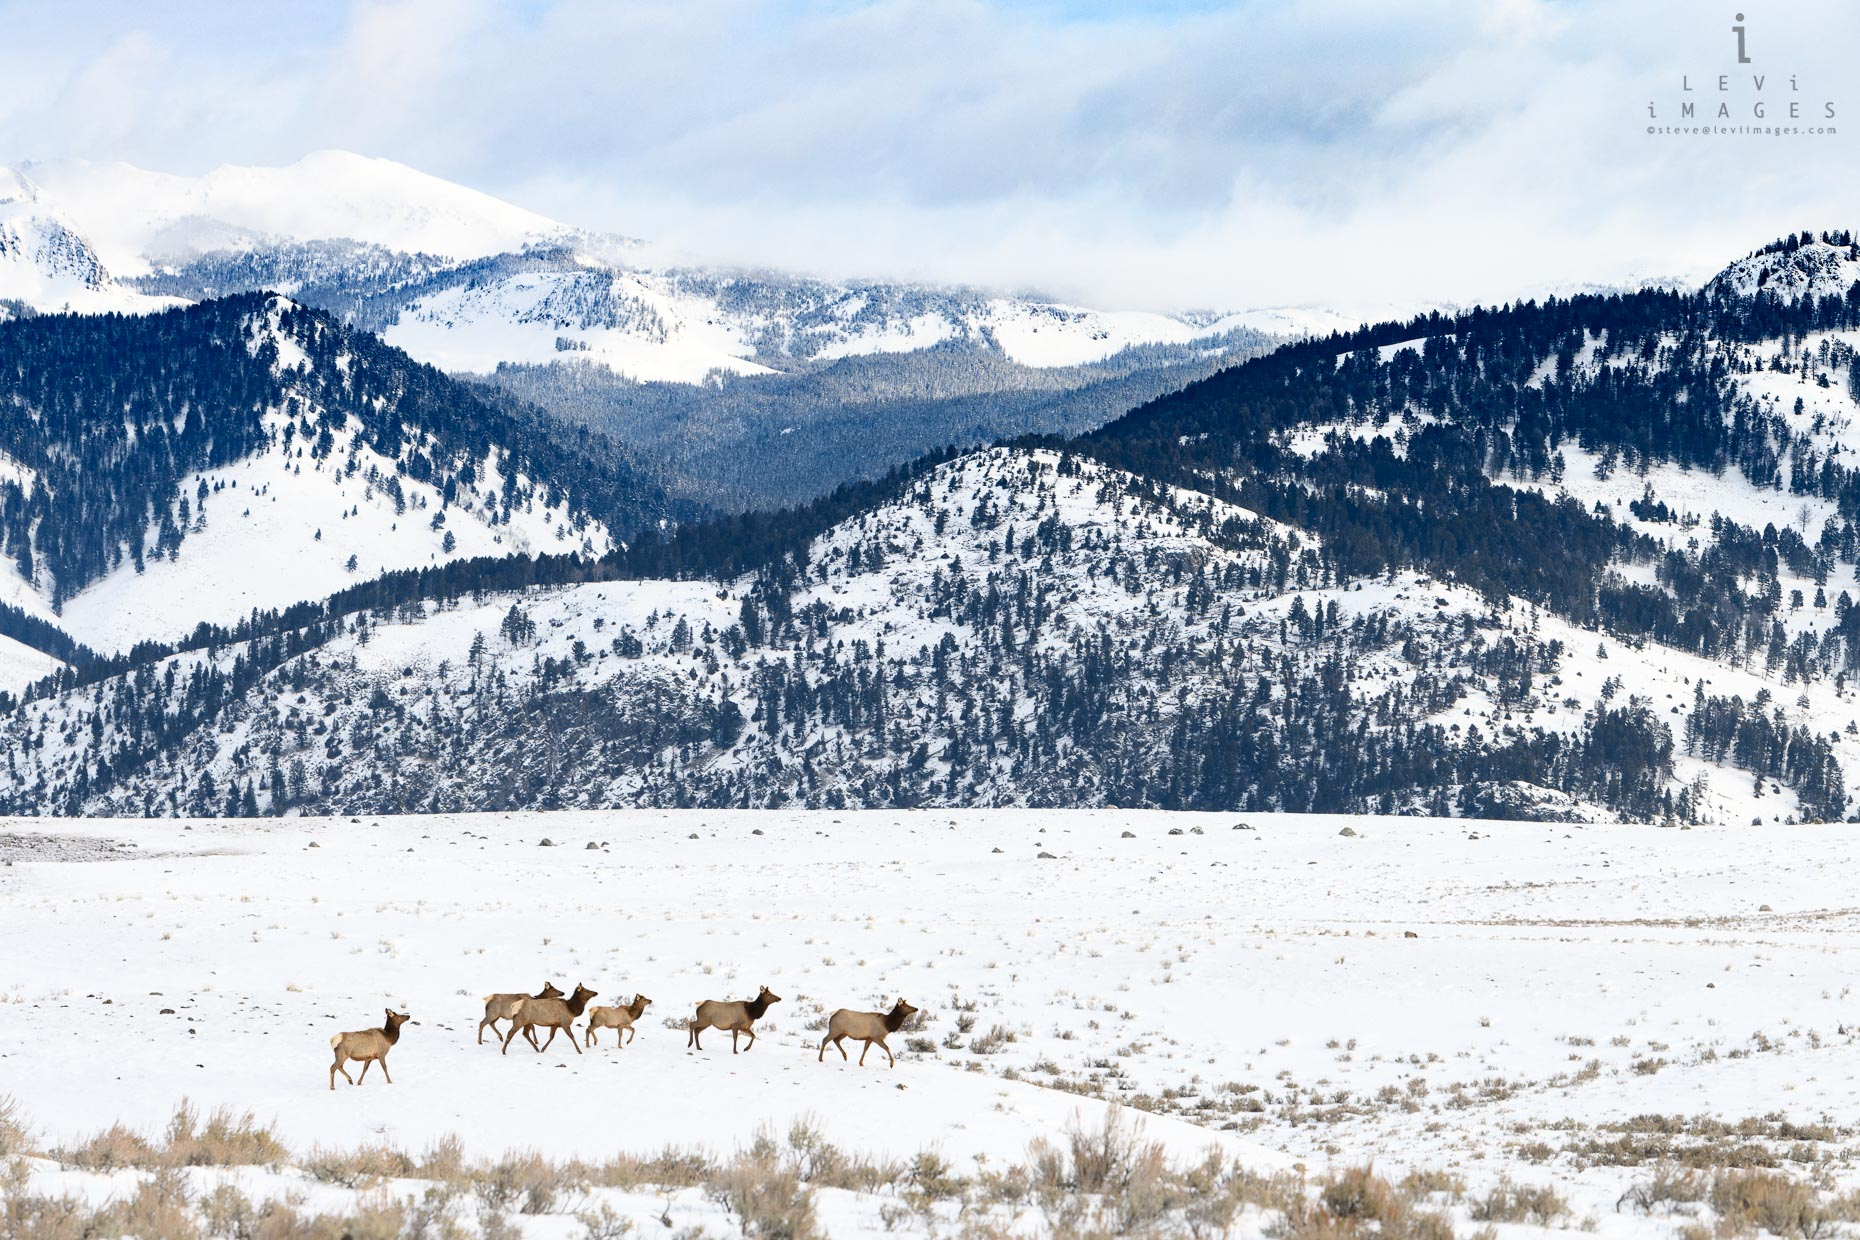 Elk (Cervus canadensis) traverse snow-covered meadow. Yellowstone National Park, Wyoming